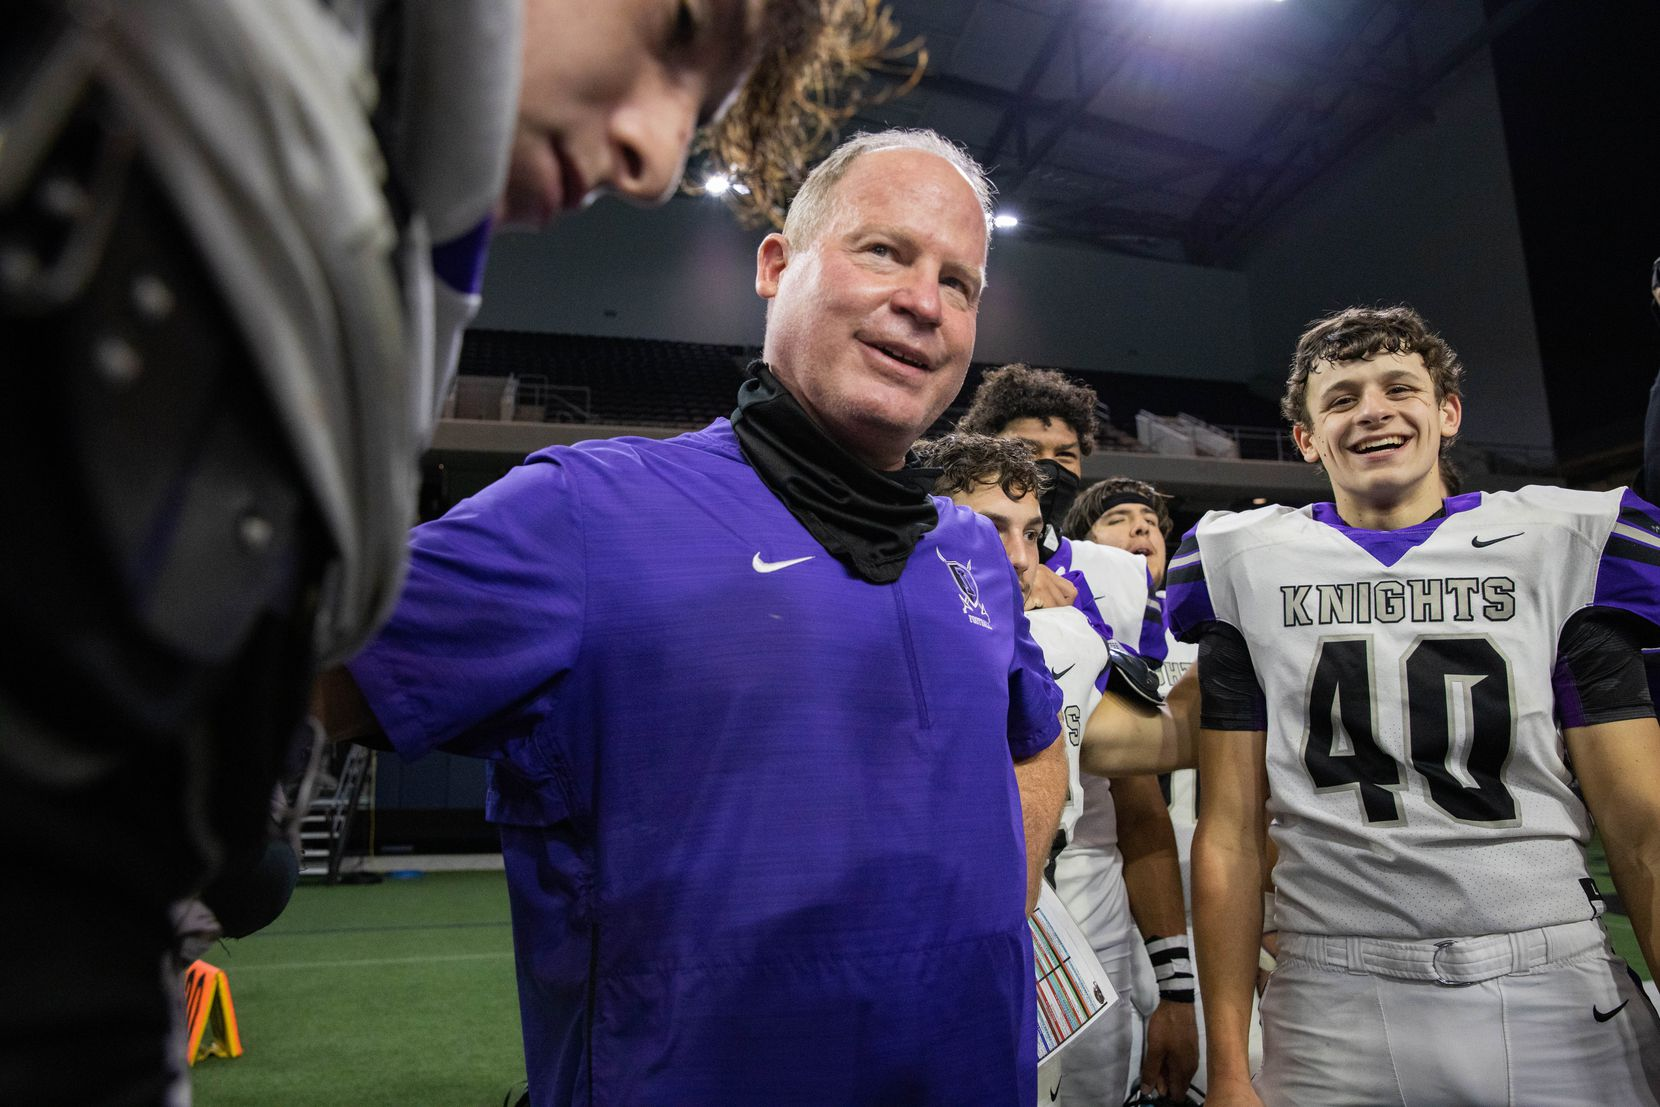 Frisco Independence football coach Kyle Story gathers to pray with his team following their win against Frisco Heritage at the Ford Center at the Star in Frisco on Thursday, Dec. 3, 2020. (Juan Figueroa/ The Dallas Morning News)